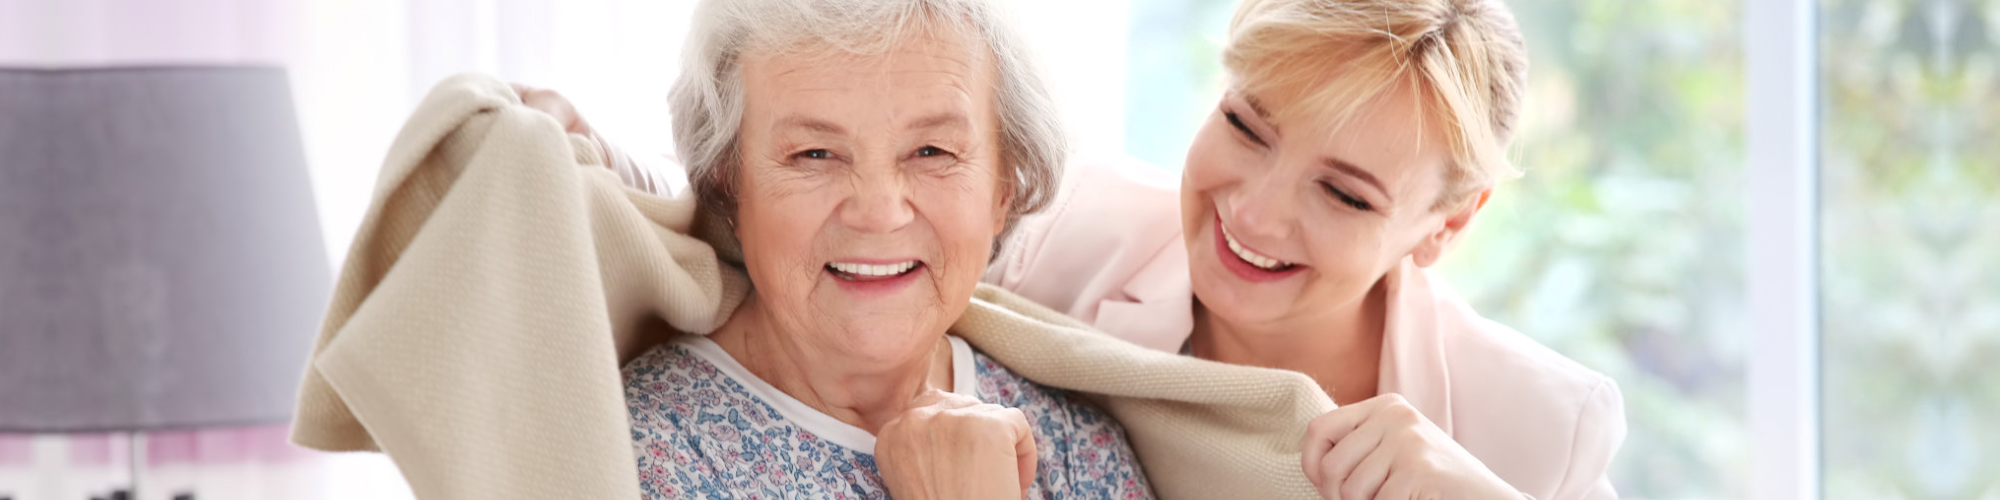 photo of a caregiver giving blanket to a senior woman